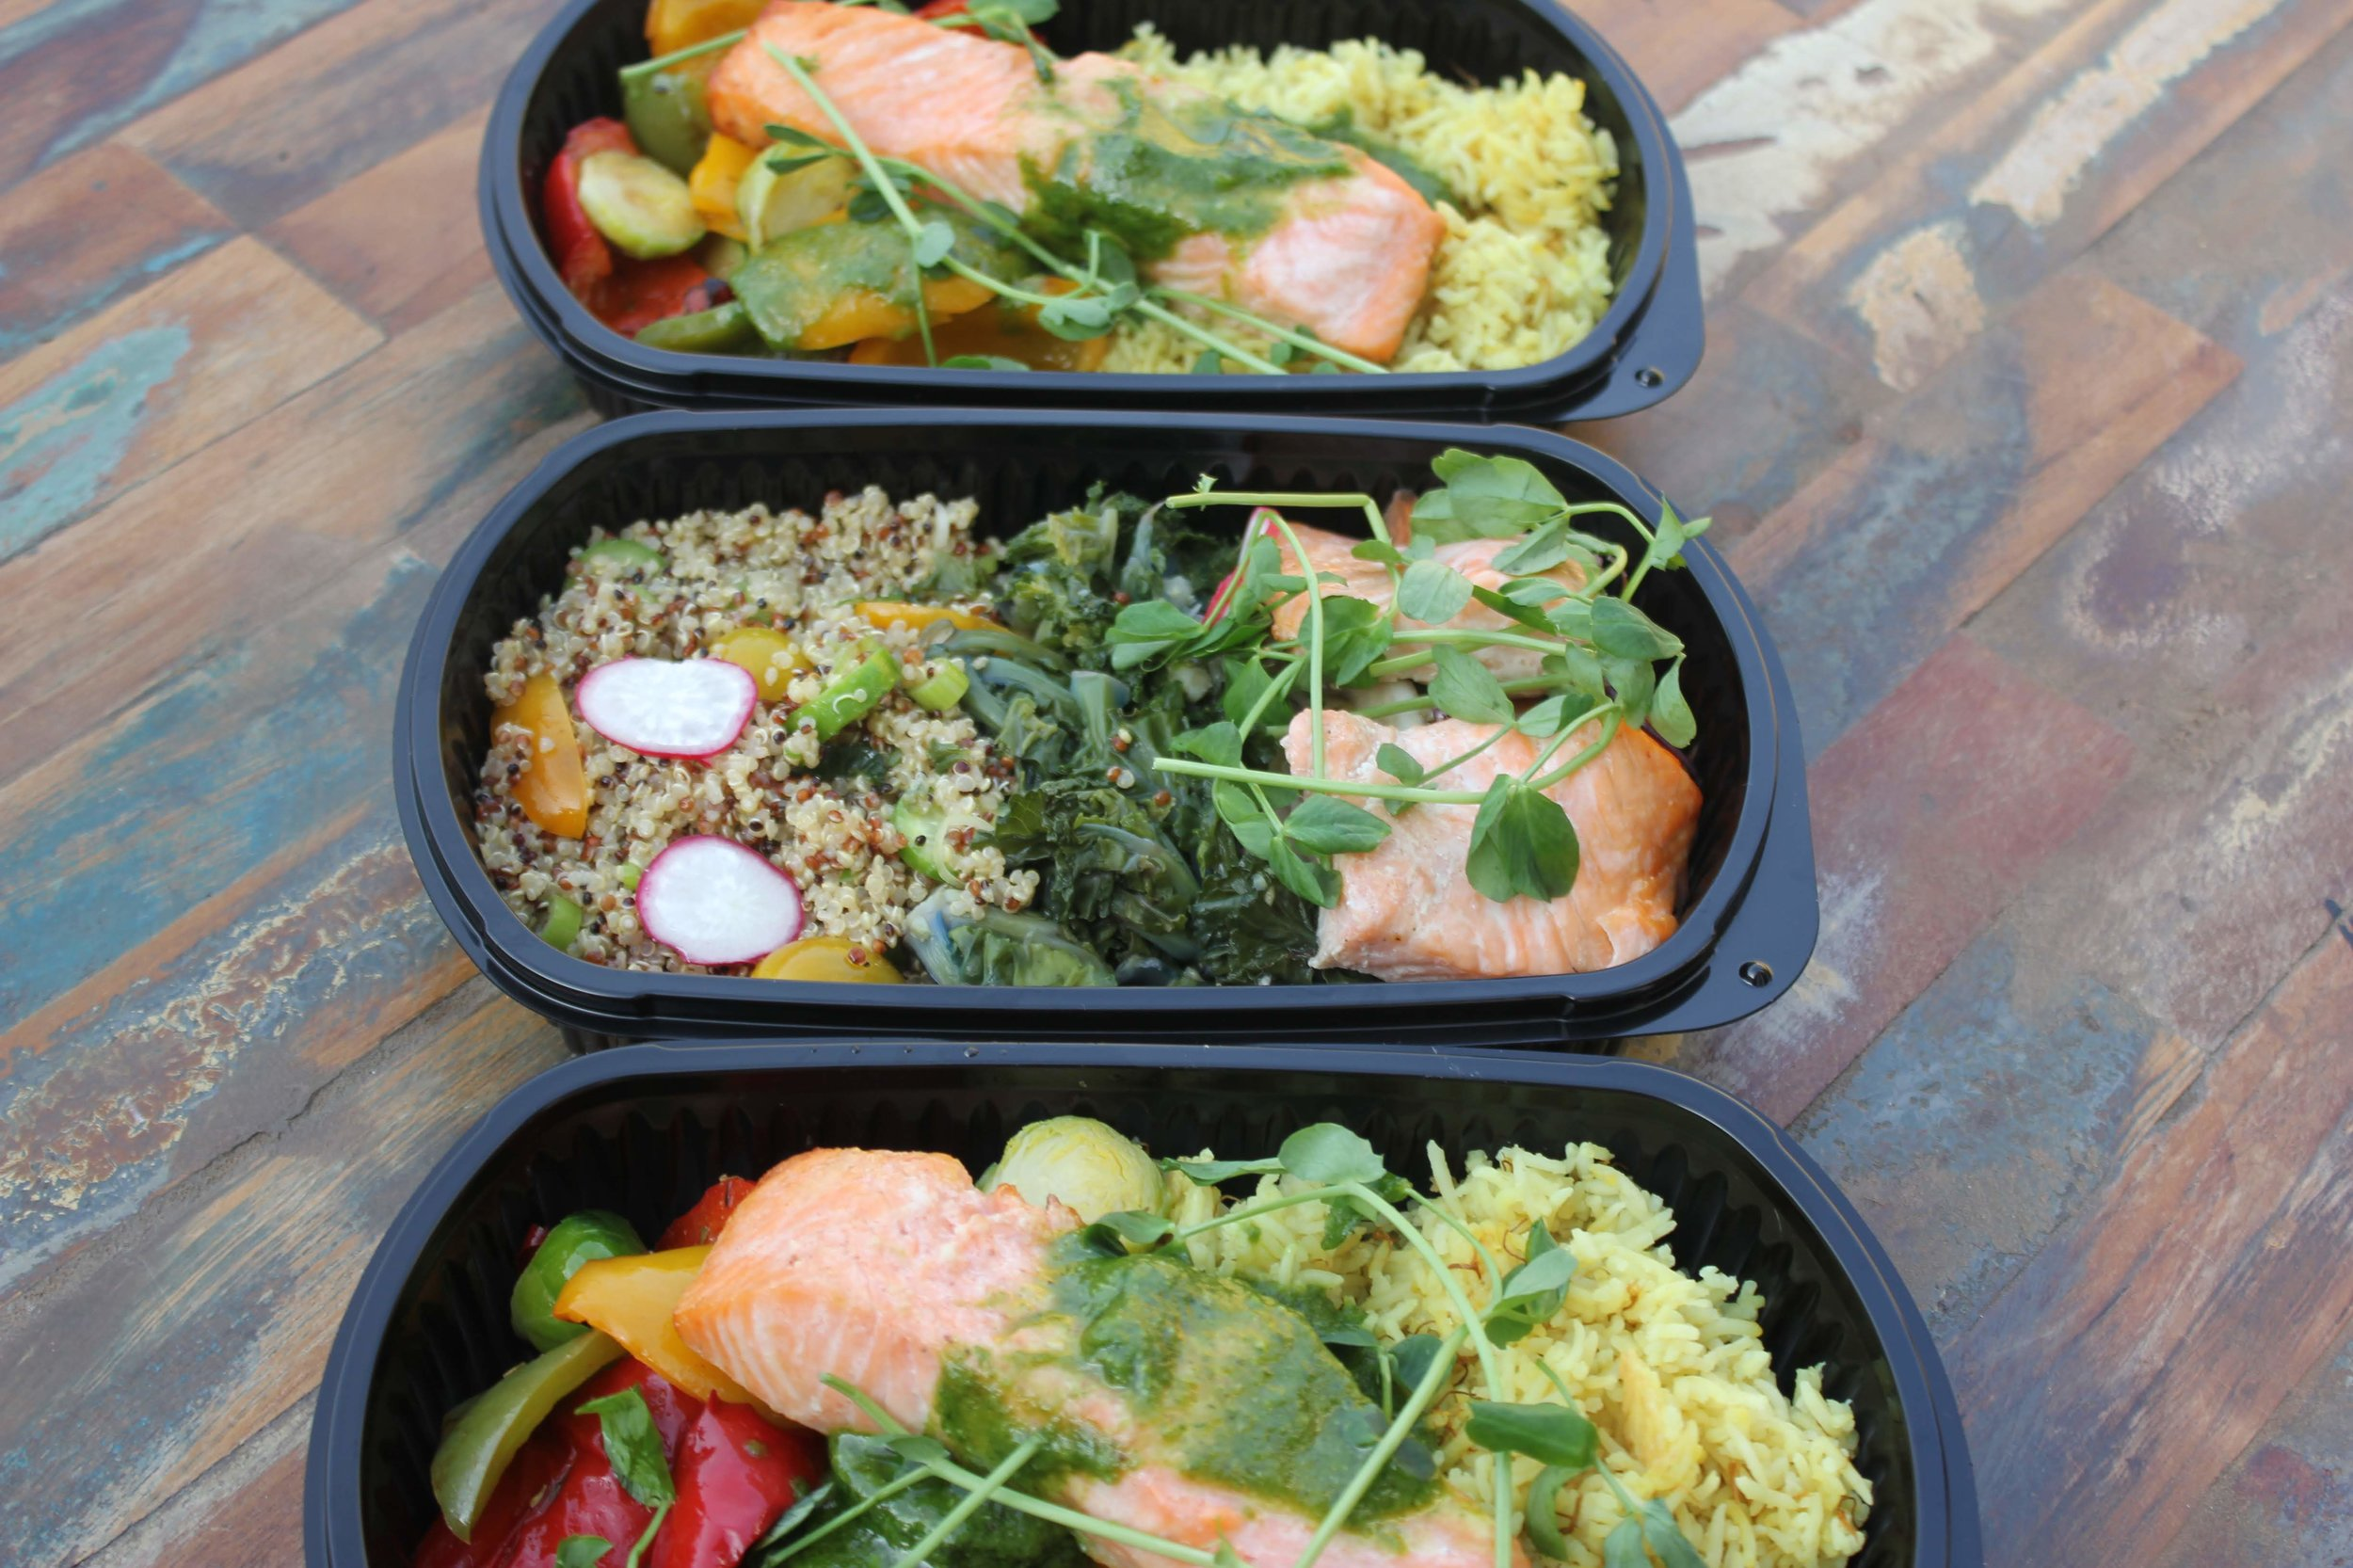 The Energise Plan - Taking the hassle out of balanced nutrition